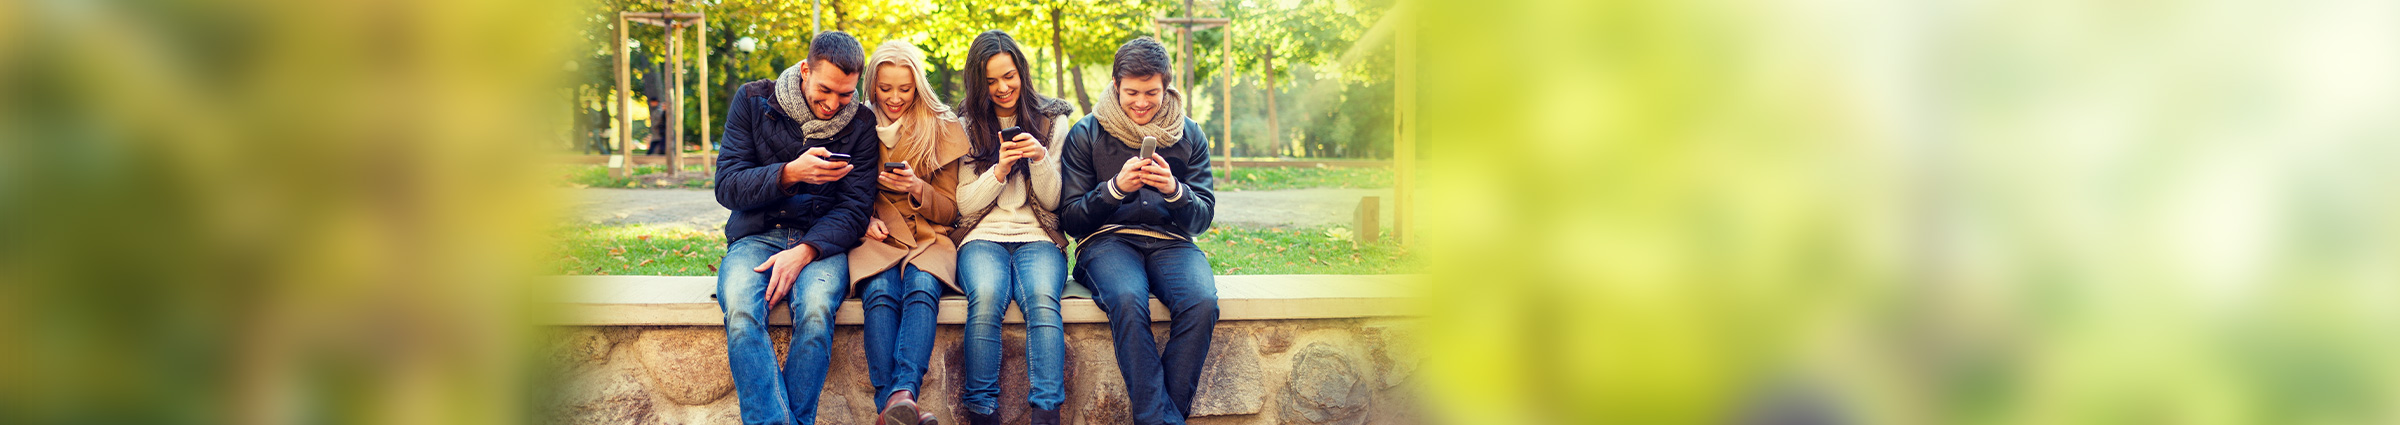 Group of young people on cellphones outside